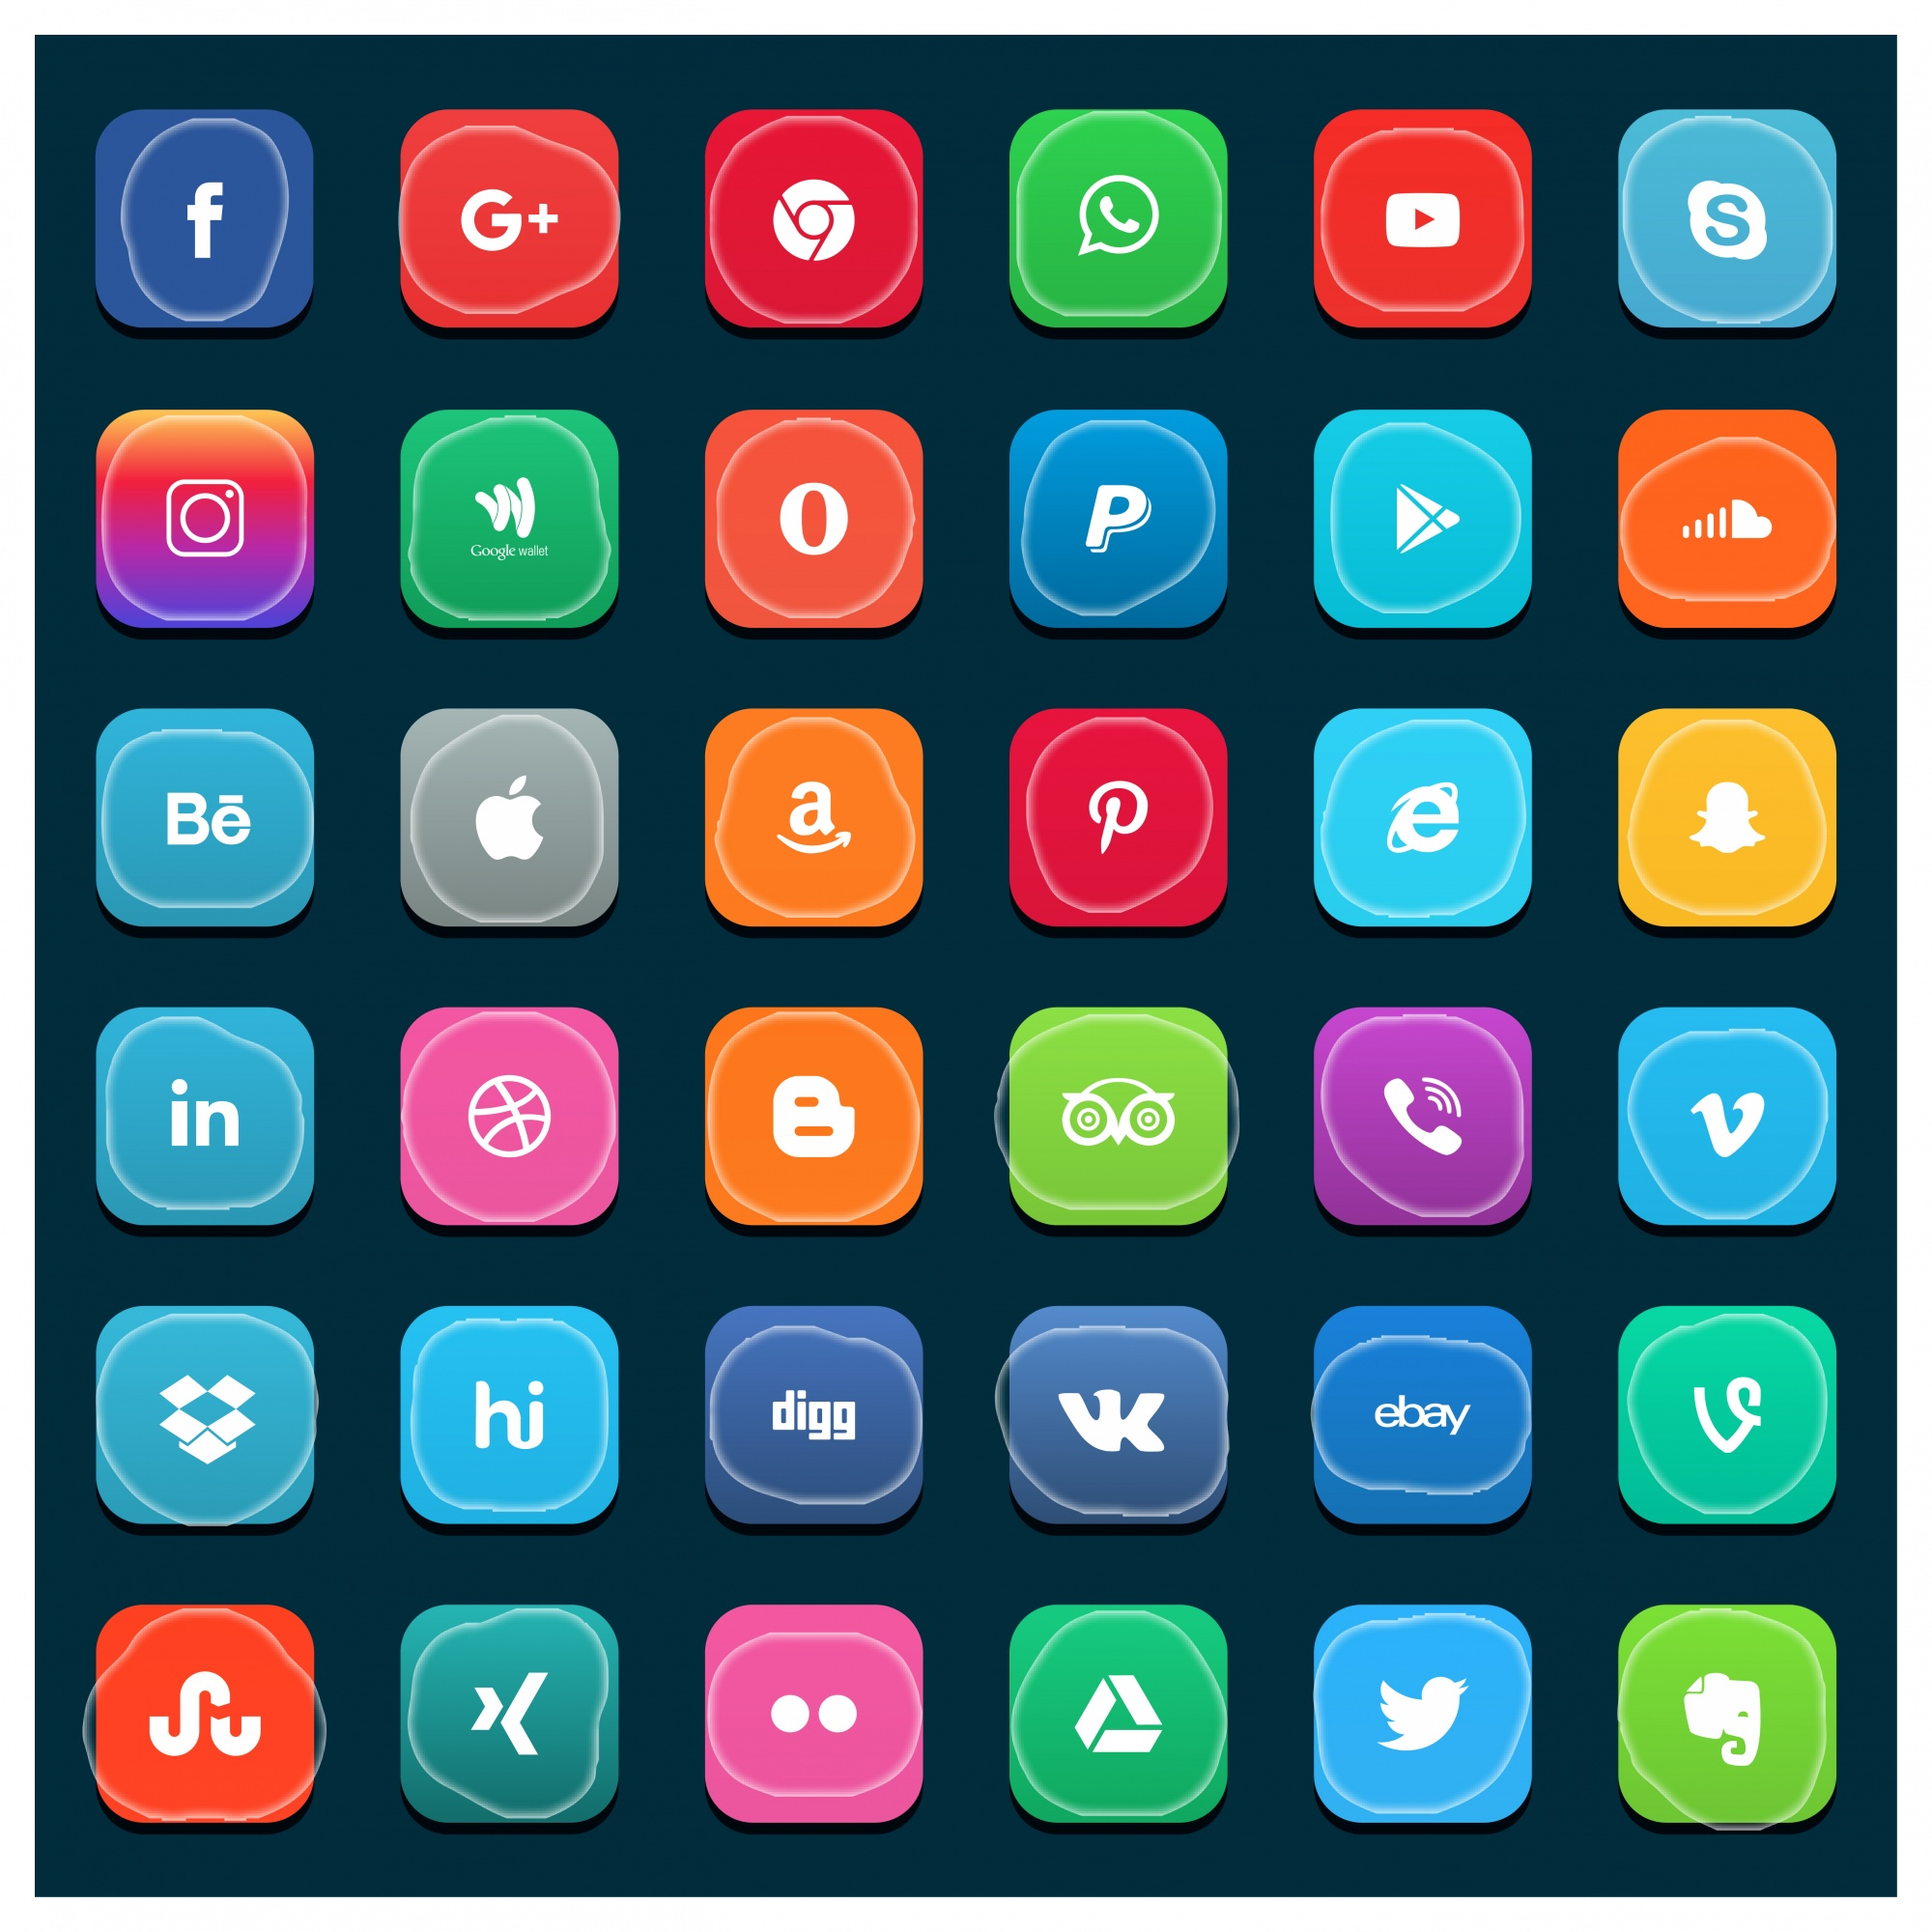 Big collection of social media icons